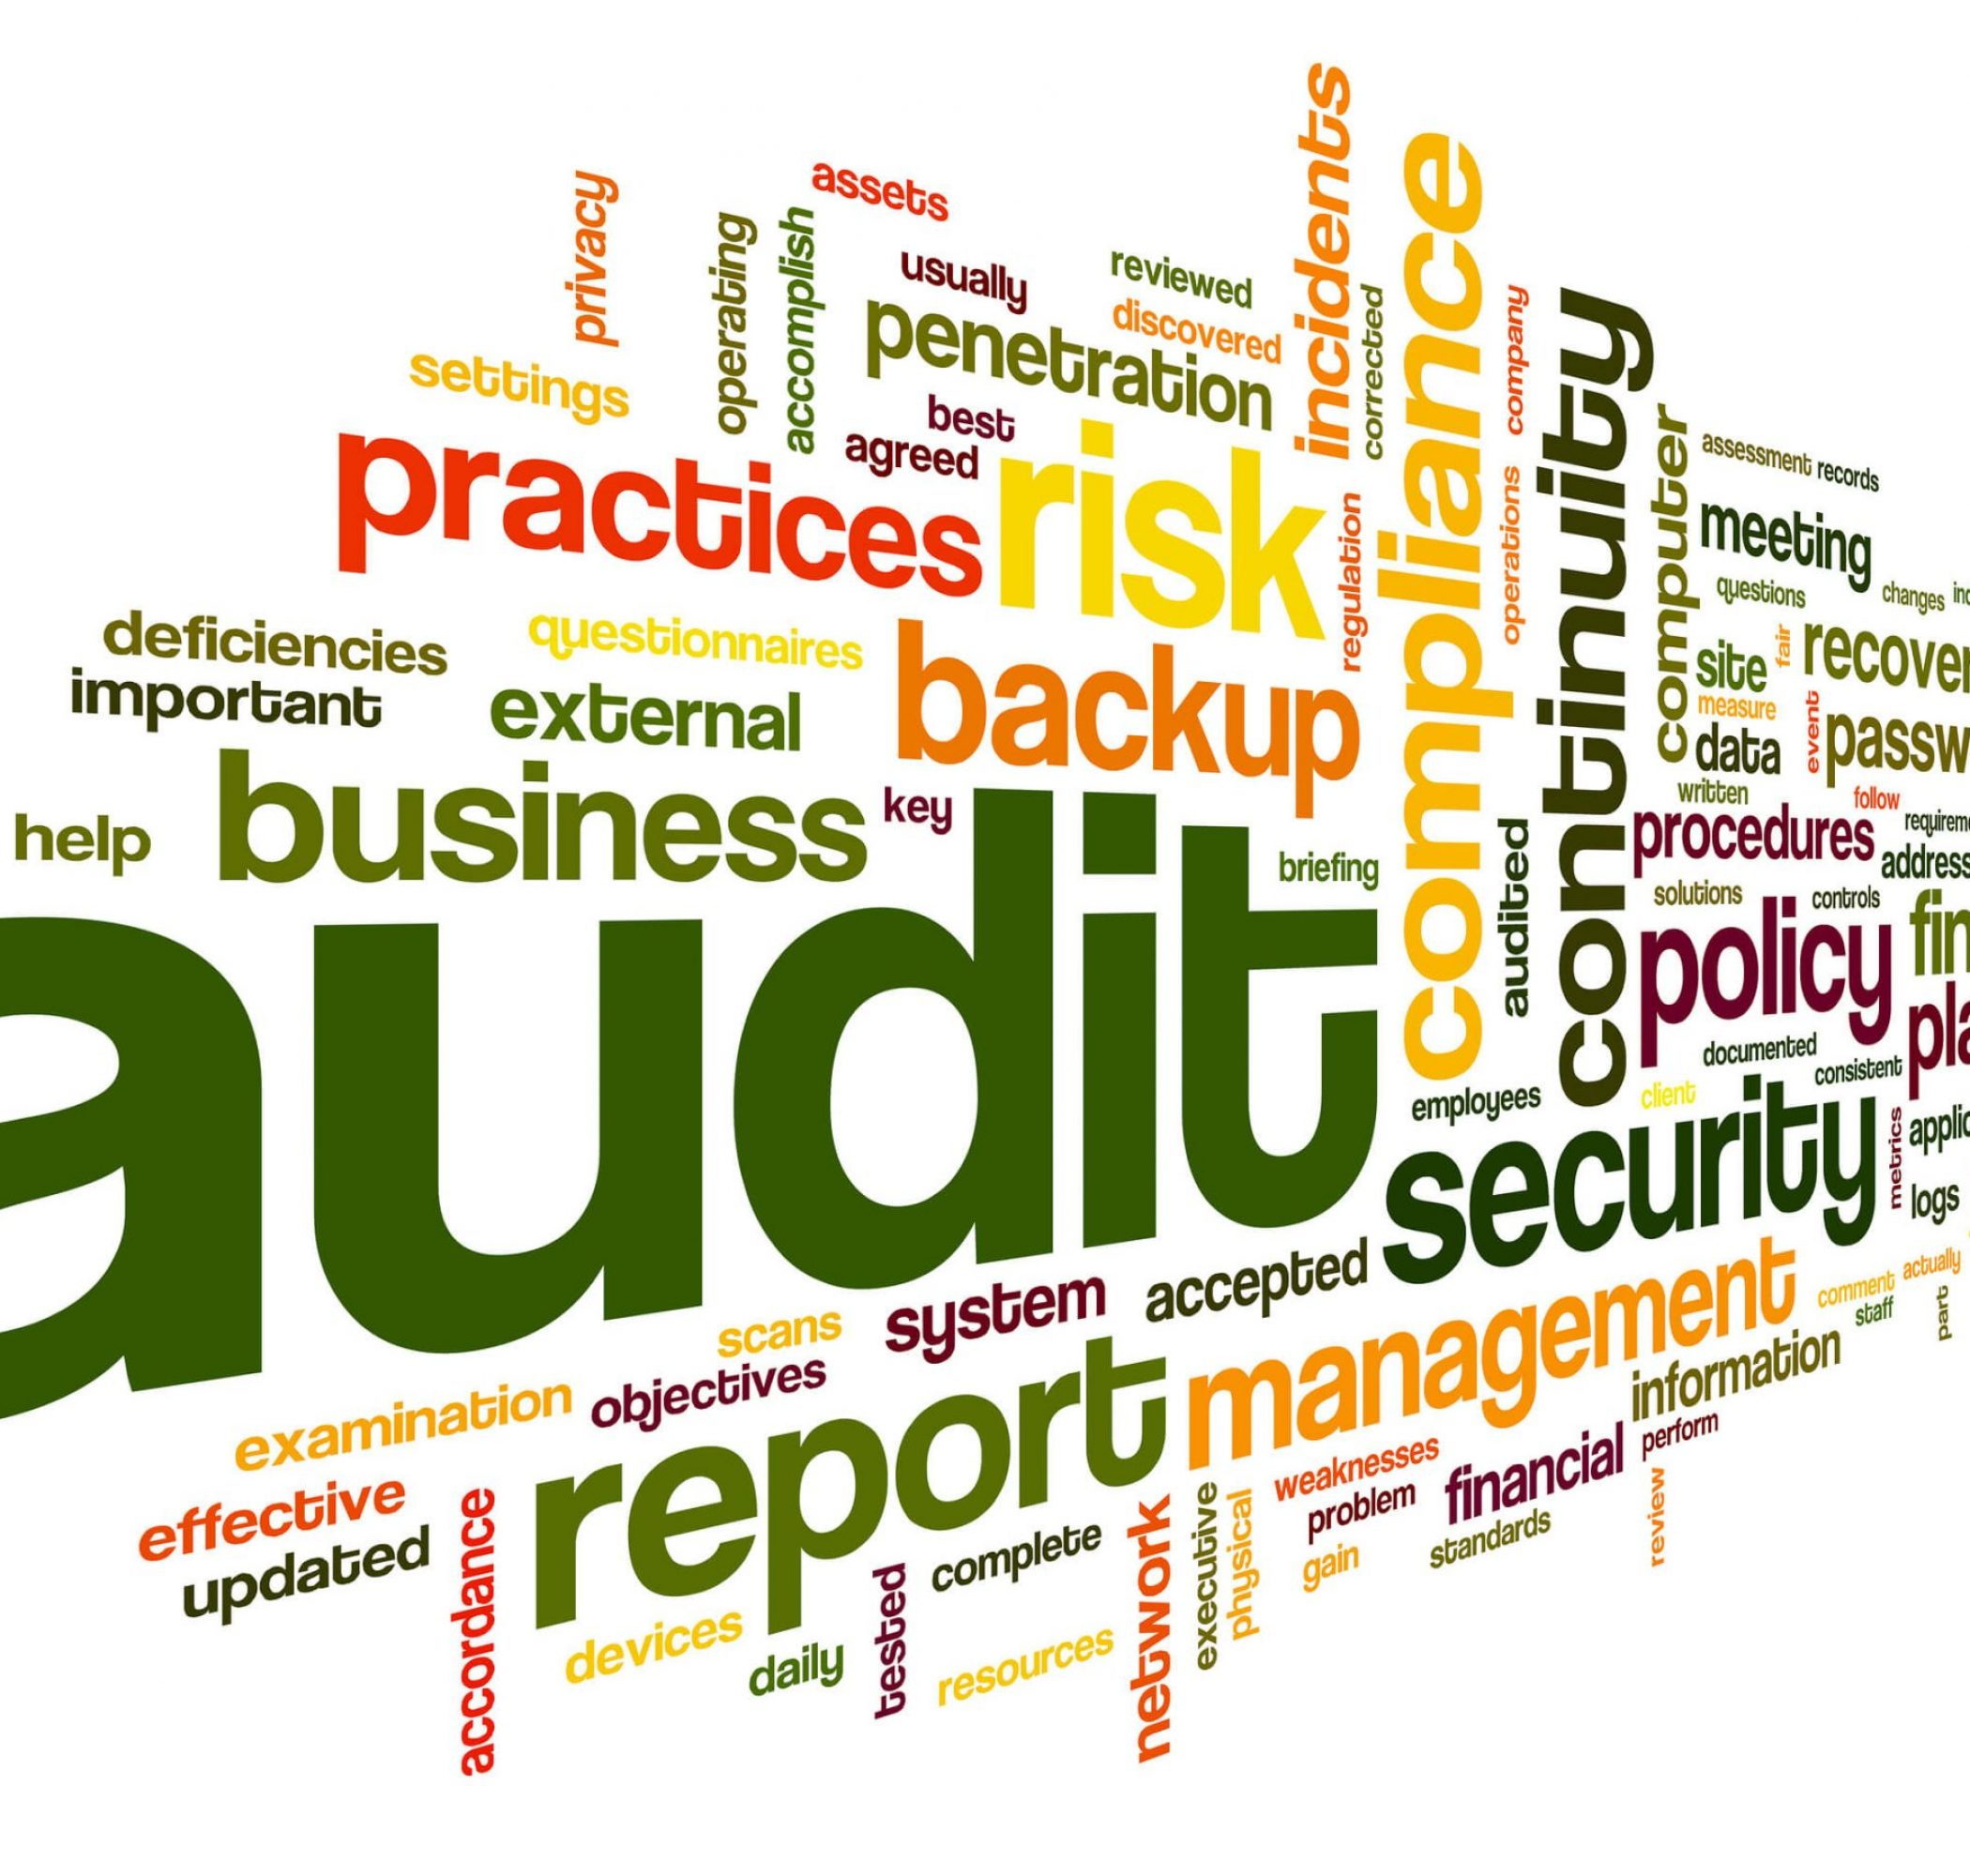 bigstock-Audit-and-compliance-in-word-63412828